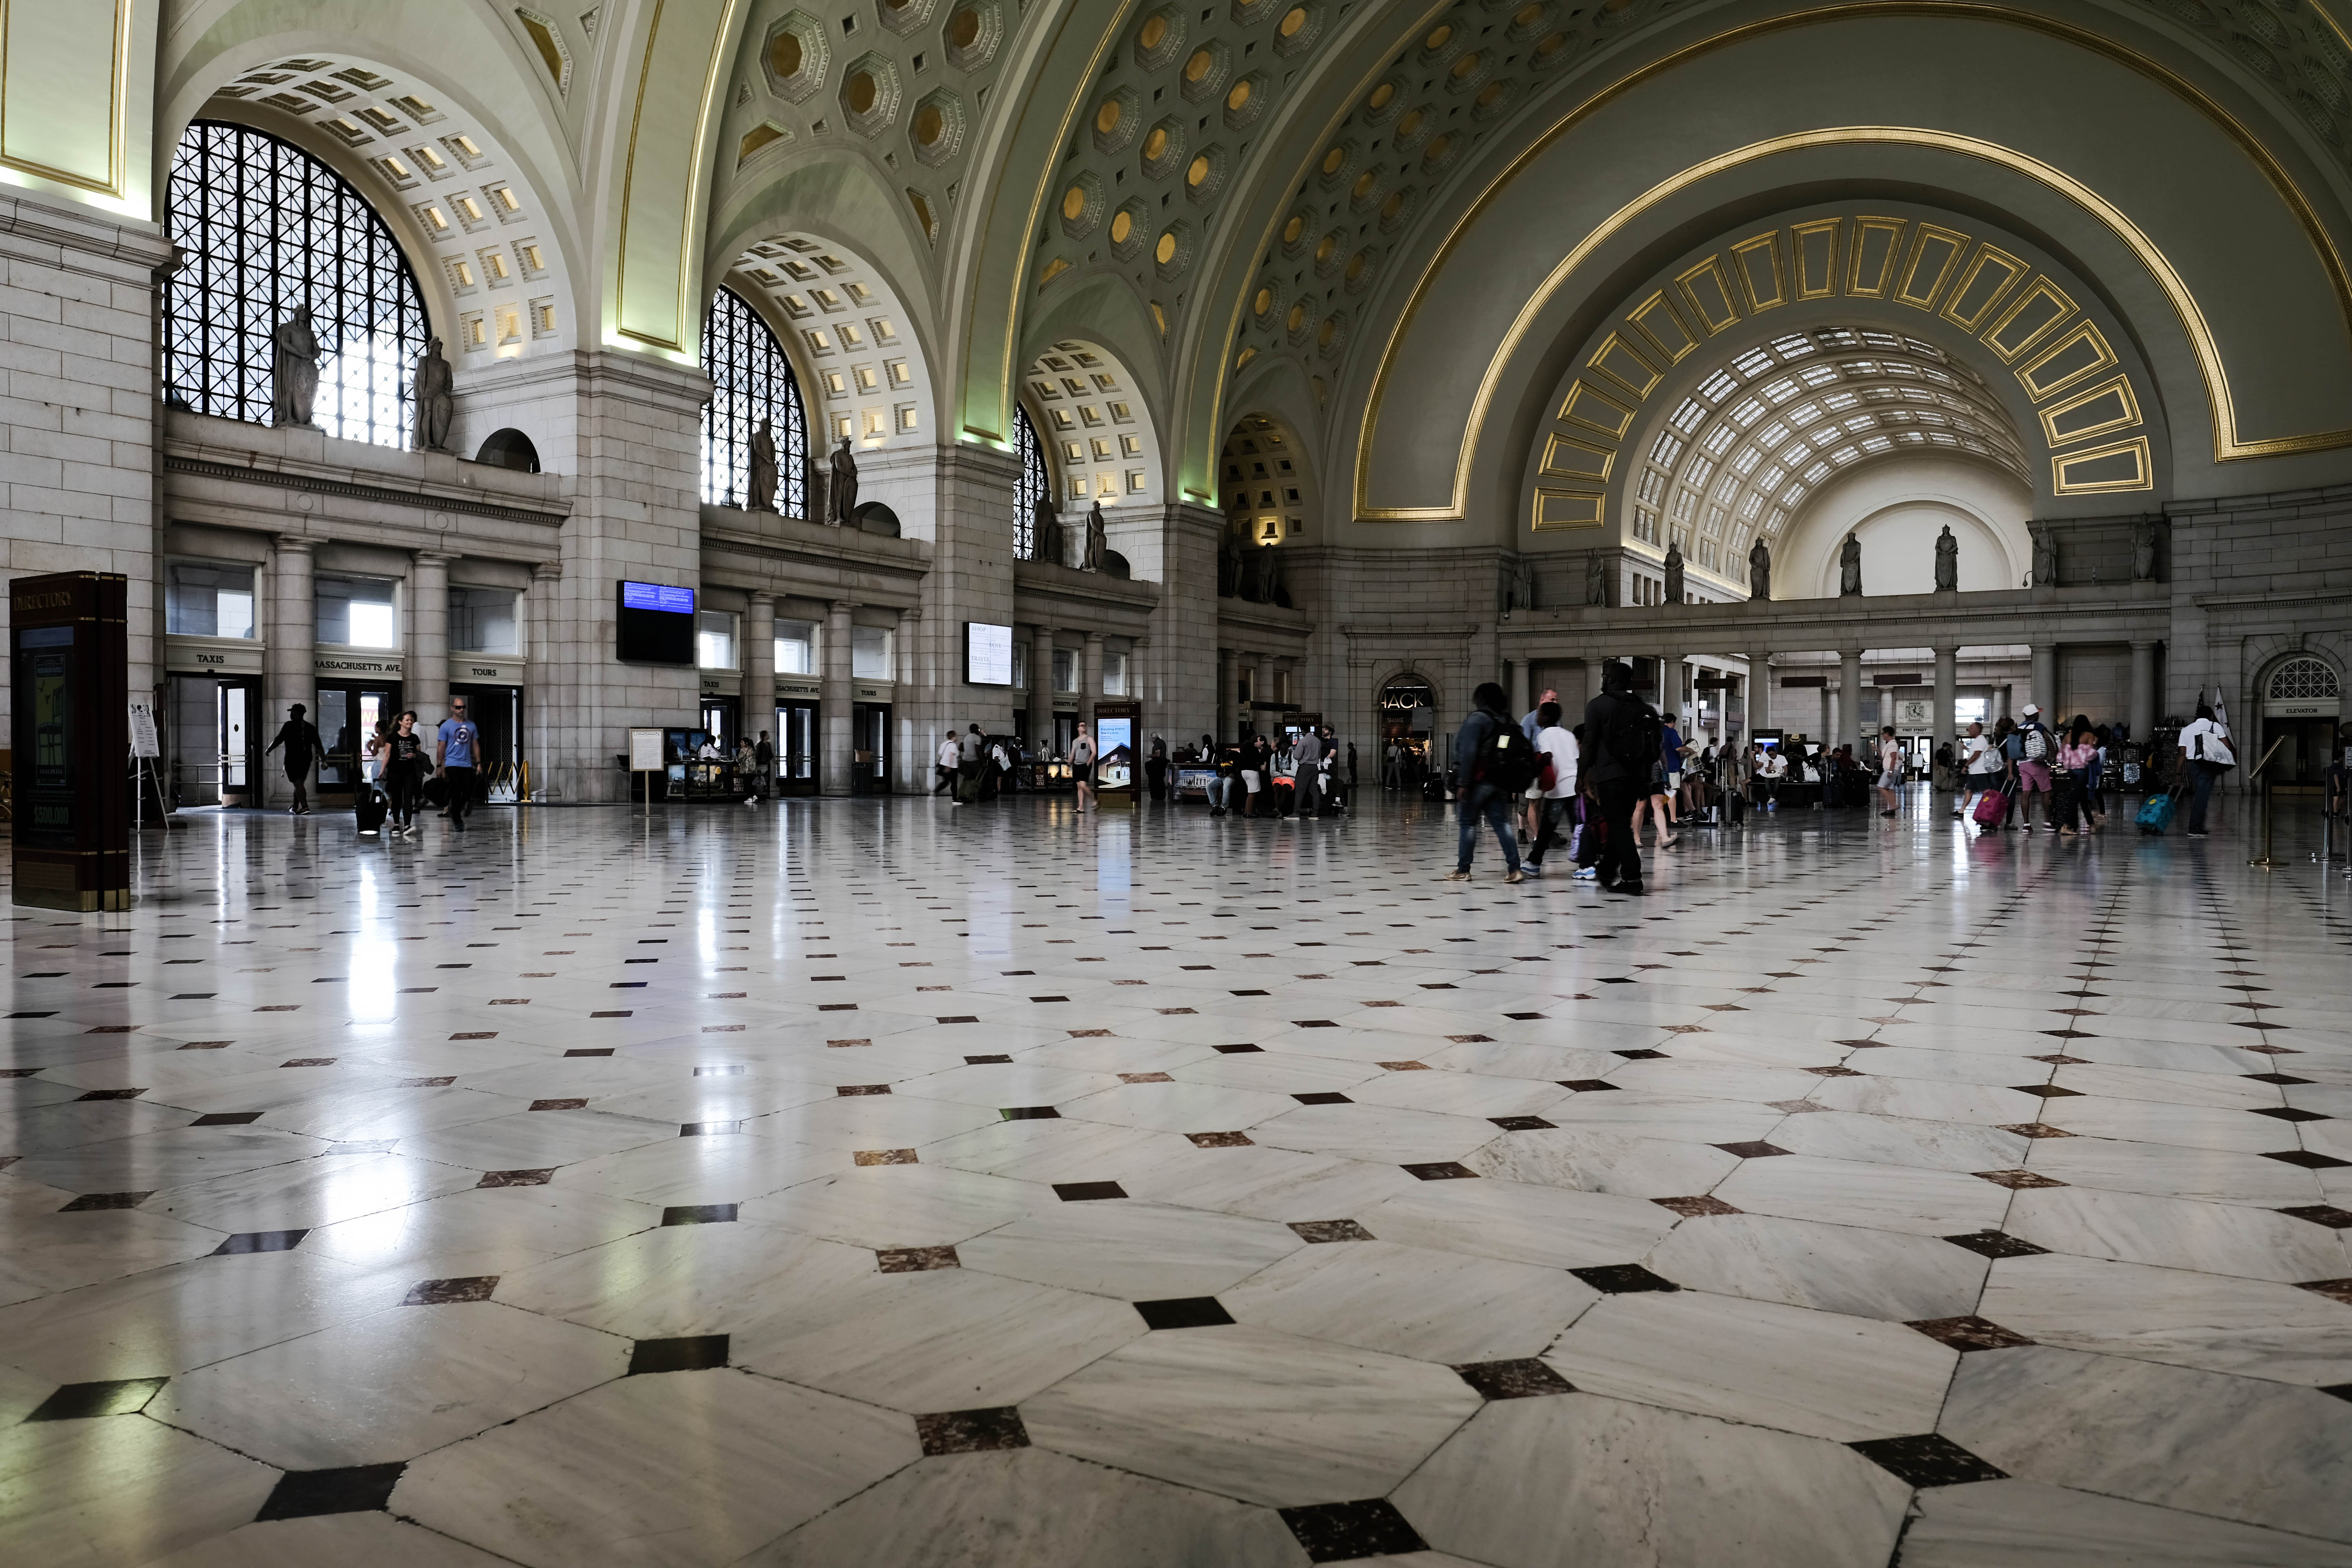 The interior of Union Station in Washington D.C. The floor has black and white patterned tiles. The ceiling is arched.